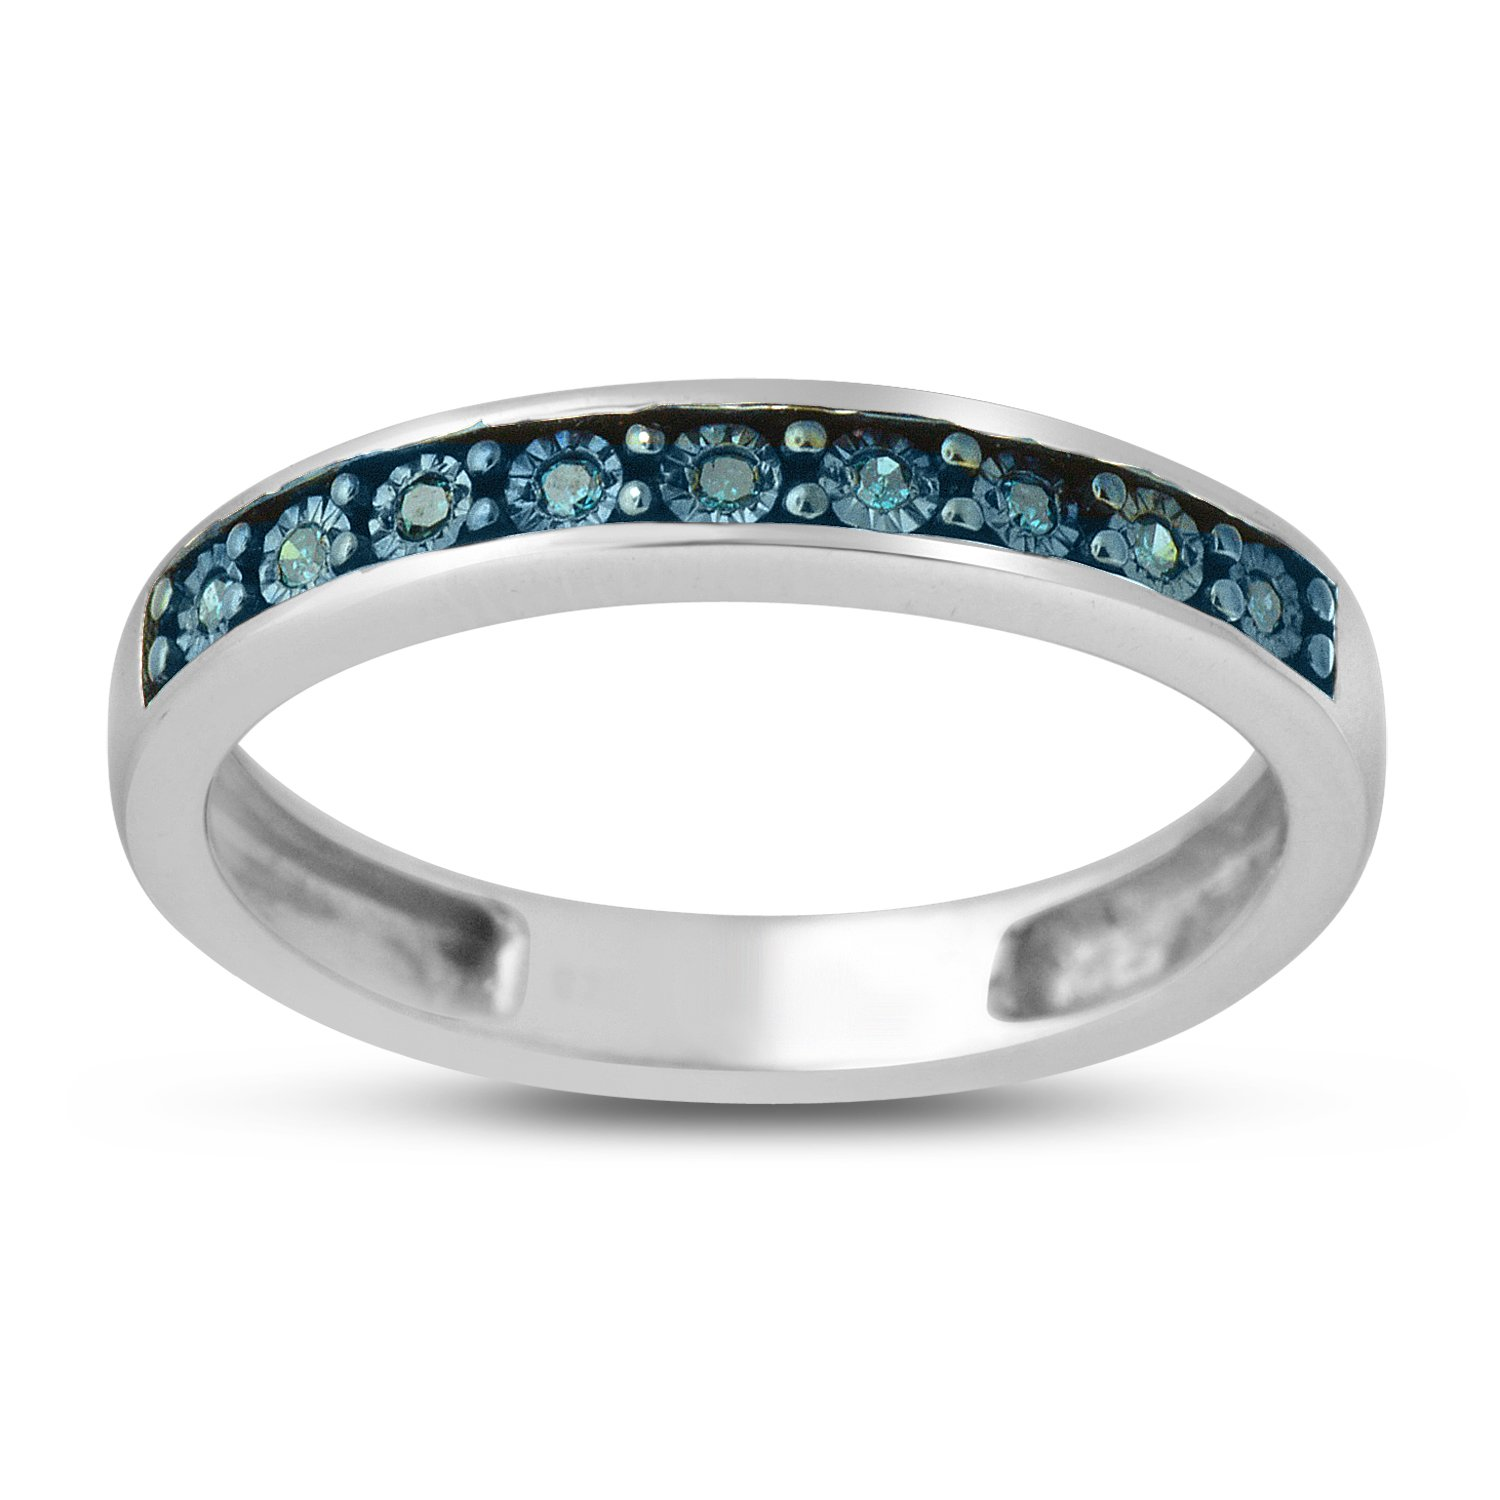 0.05 CTTW Sterling Silver Blue Diamond with illusion plate band